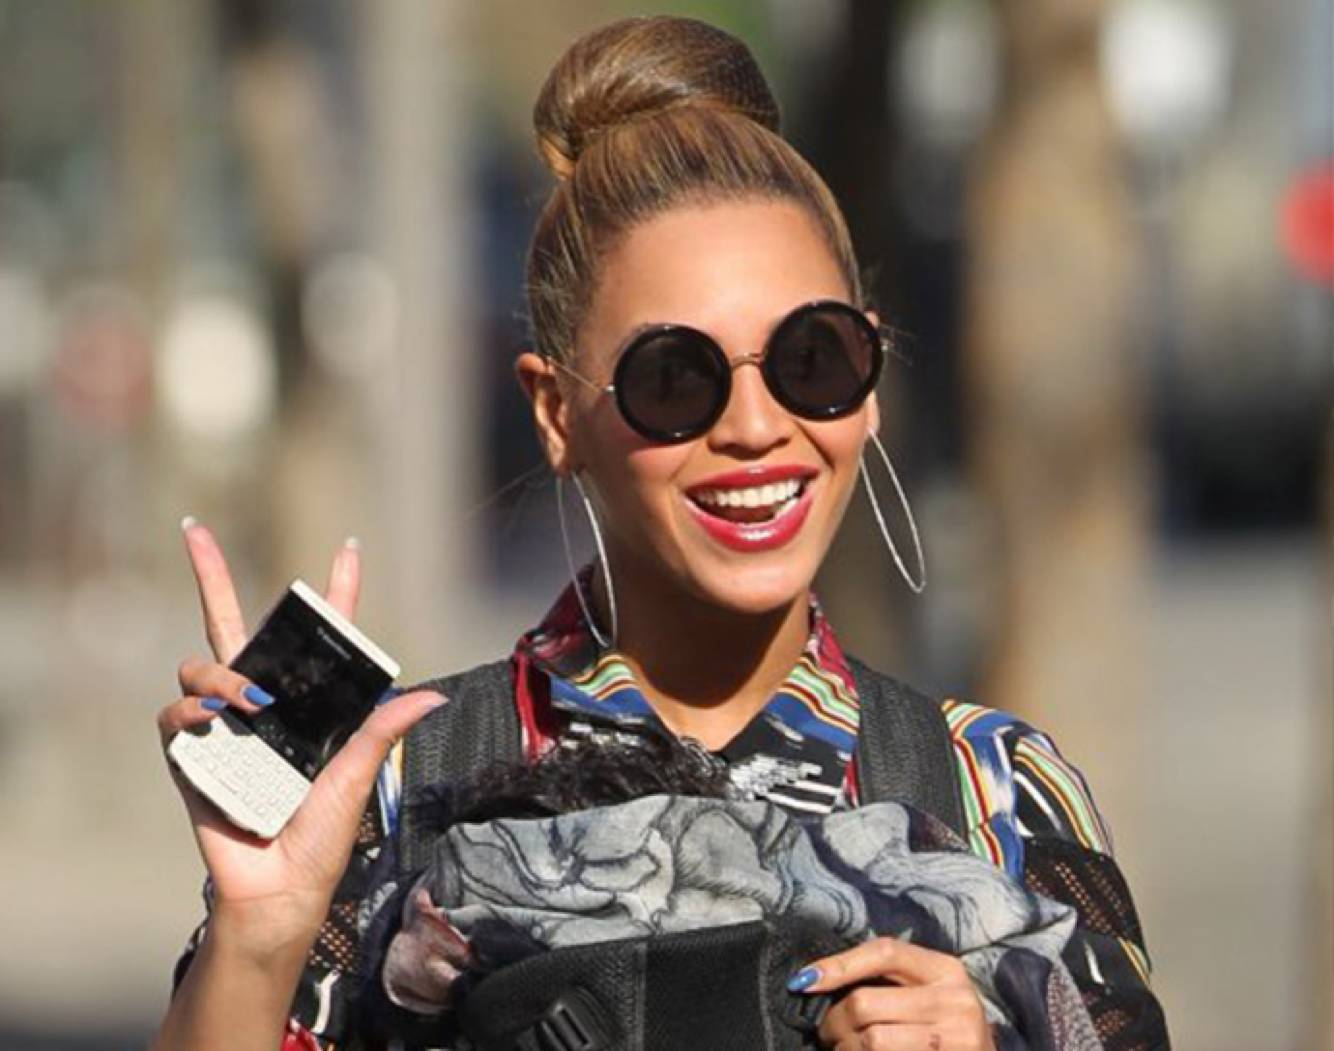 Beyonce-wearing-sunglasses-Photo-Pinterest